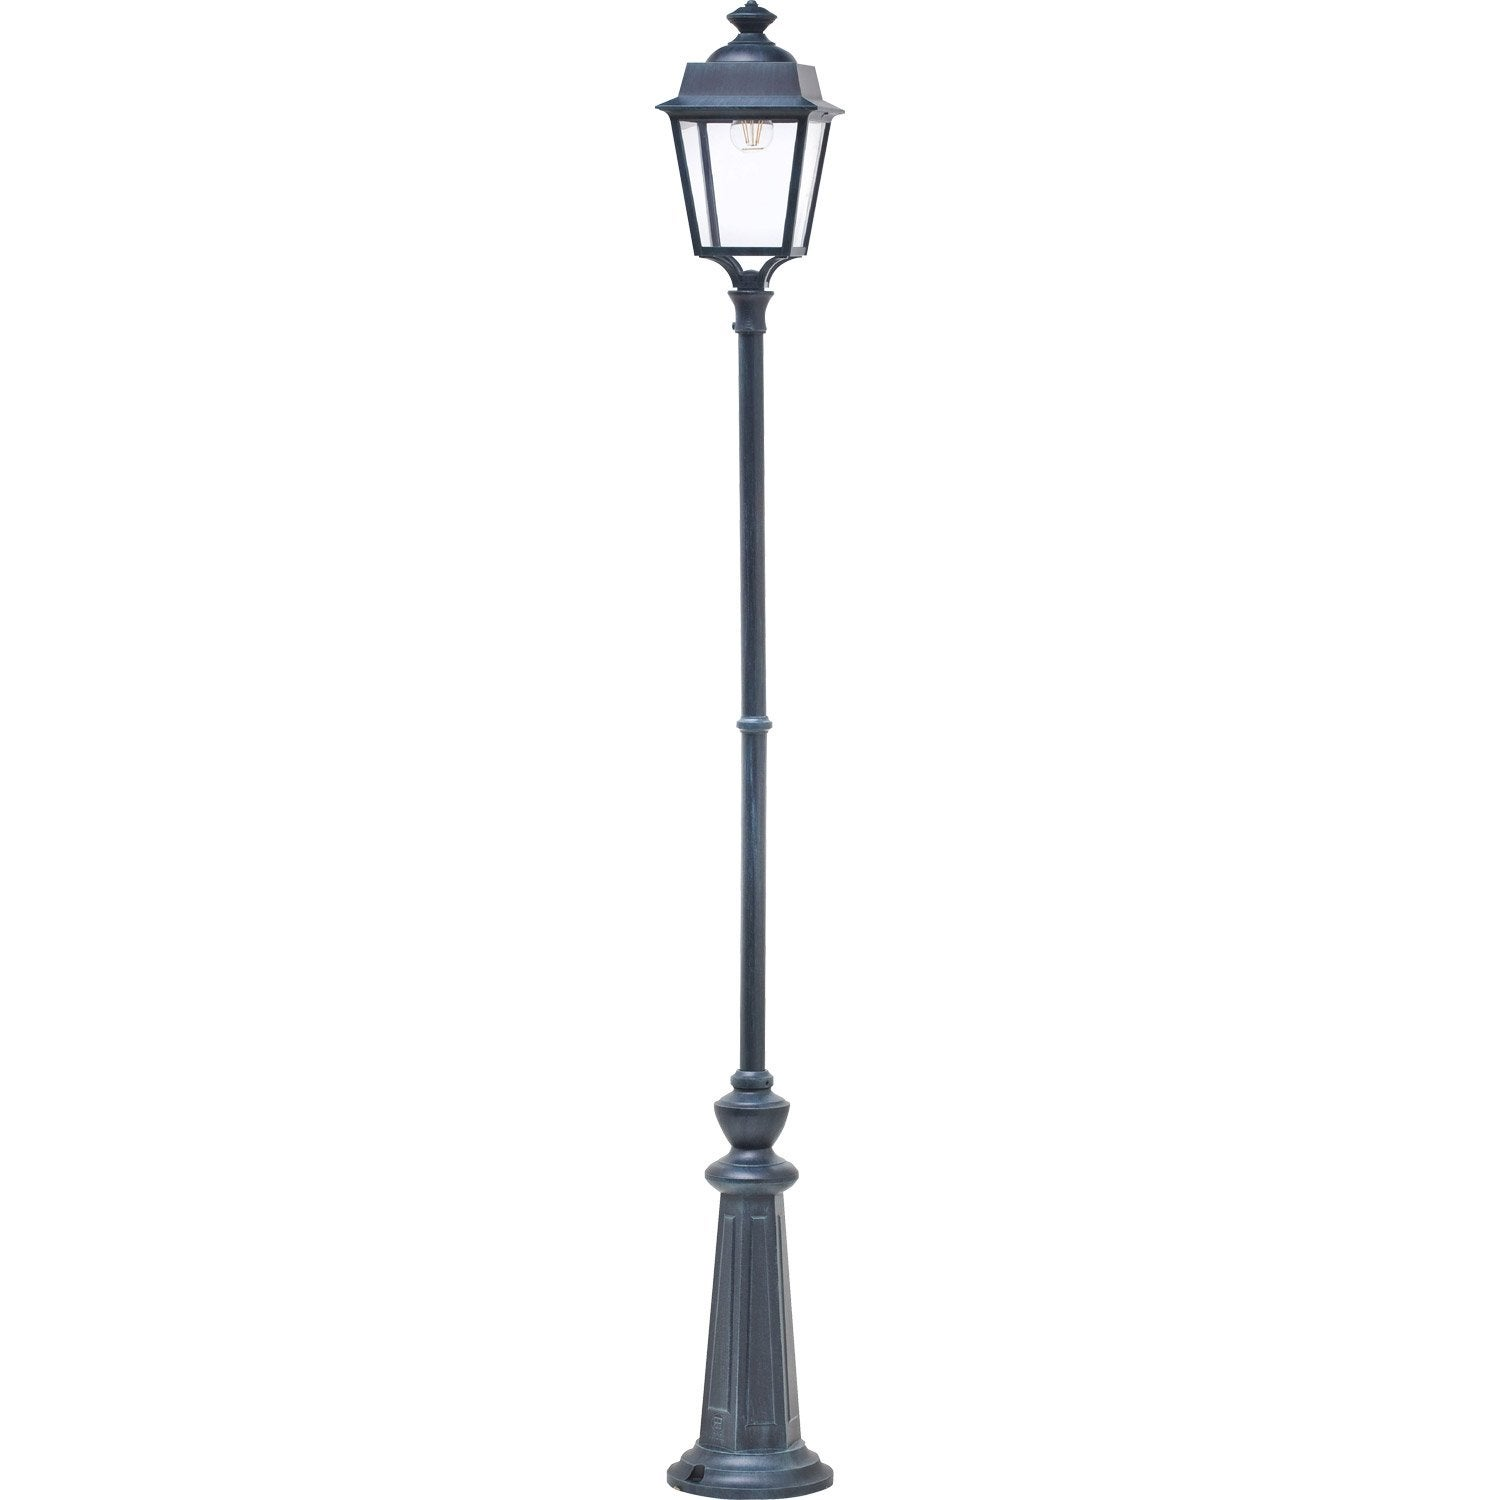 lampadaire ext rieur place des vosges e27 vert de gris roger pradier leroy merlin. Black Bedroom Furniture Sets. Home Design Ideas